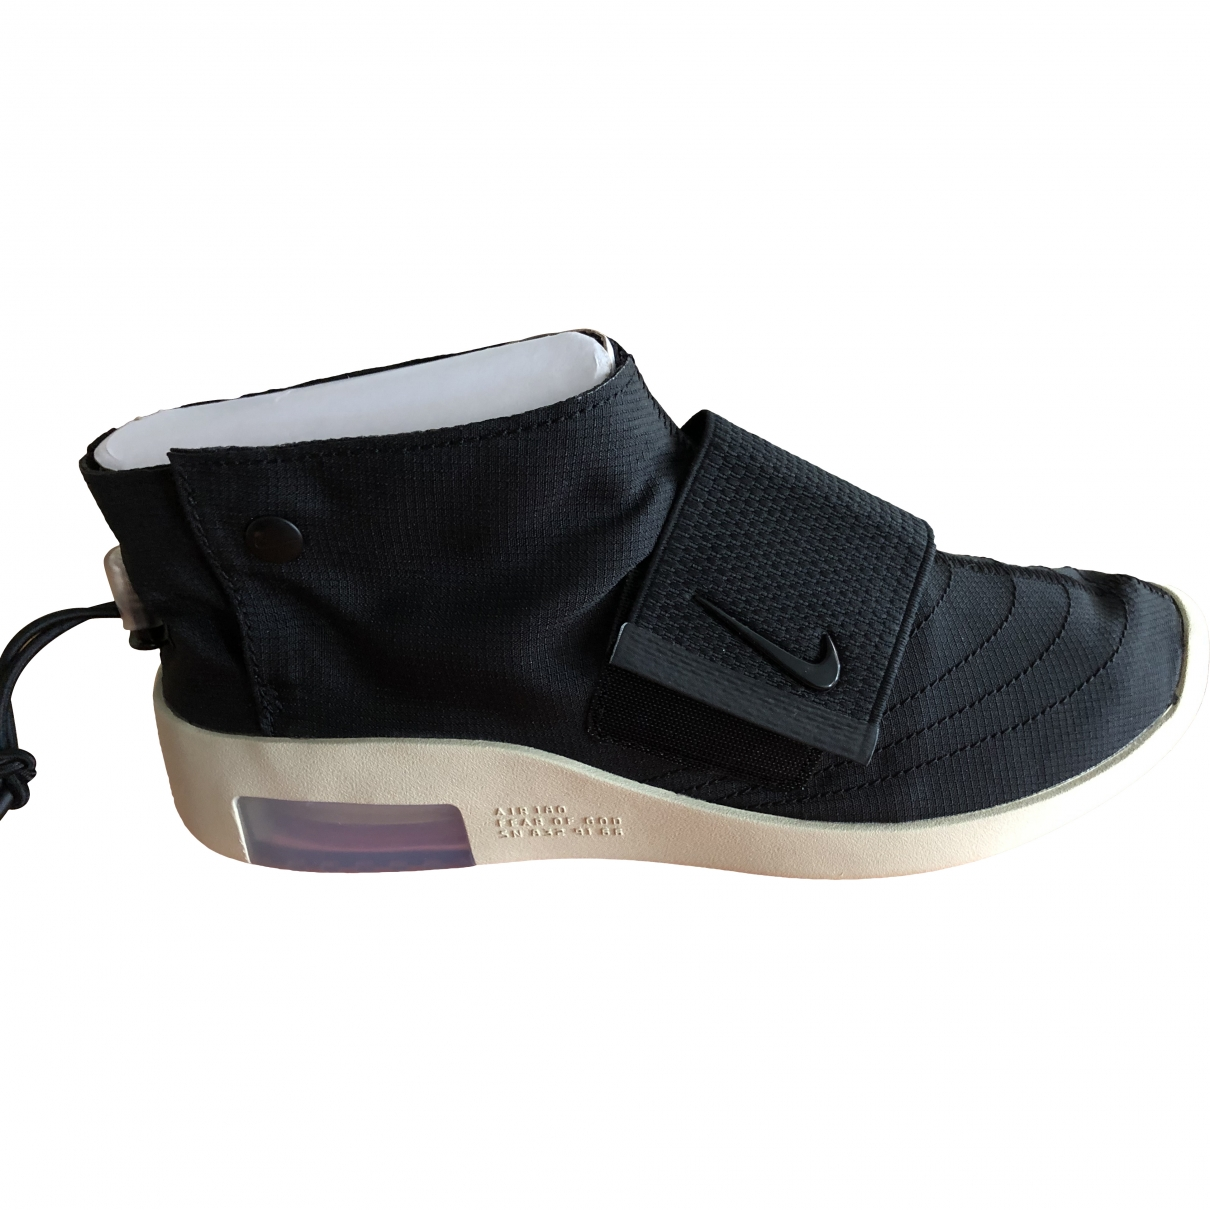 Nike X Fear Of God Moccasin Black Cloth Trainers for Men 40 EU